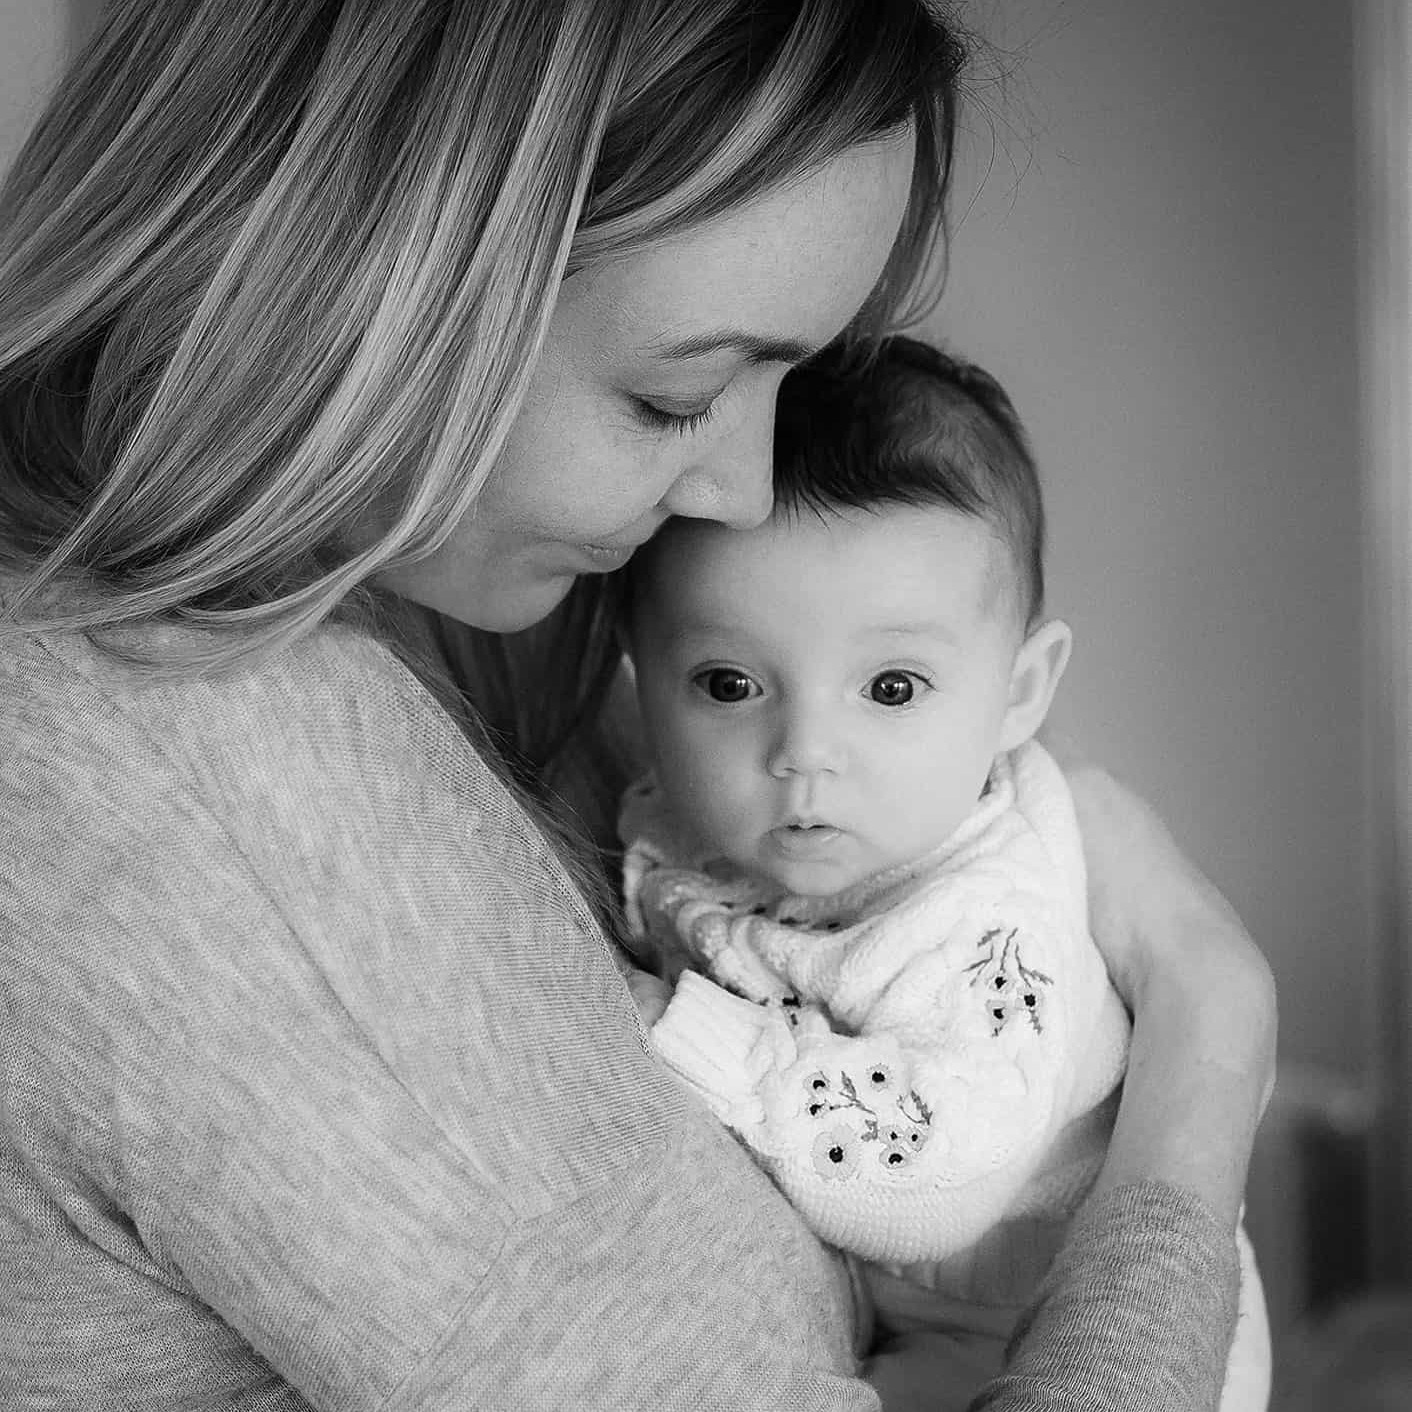 Mum holding a newborn baby during home photo session